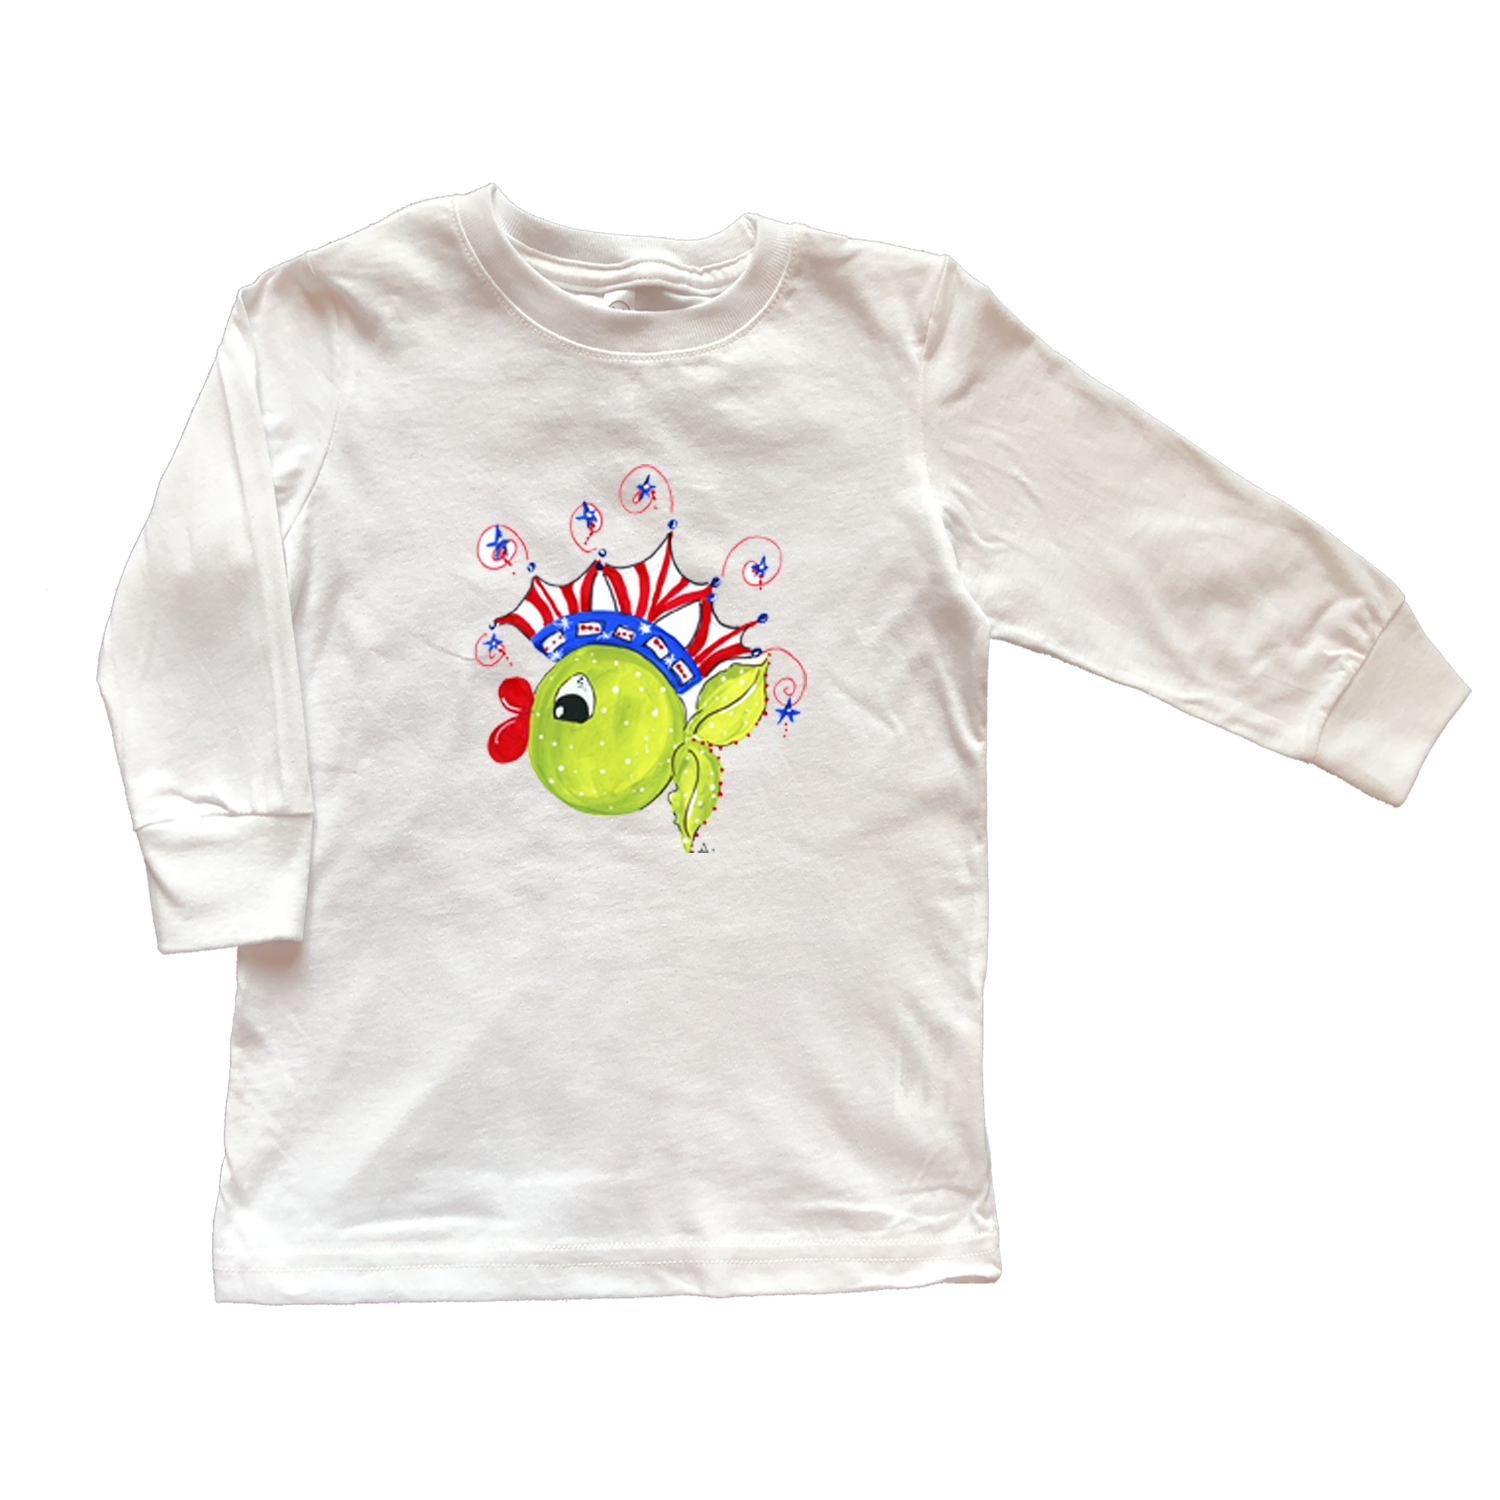 Girls Tee Shirt Long Sleeve TS921